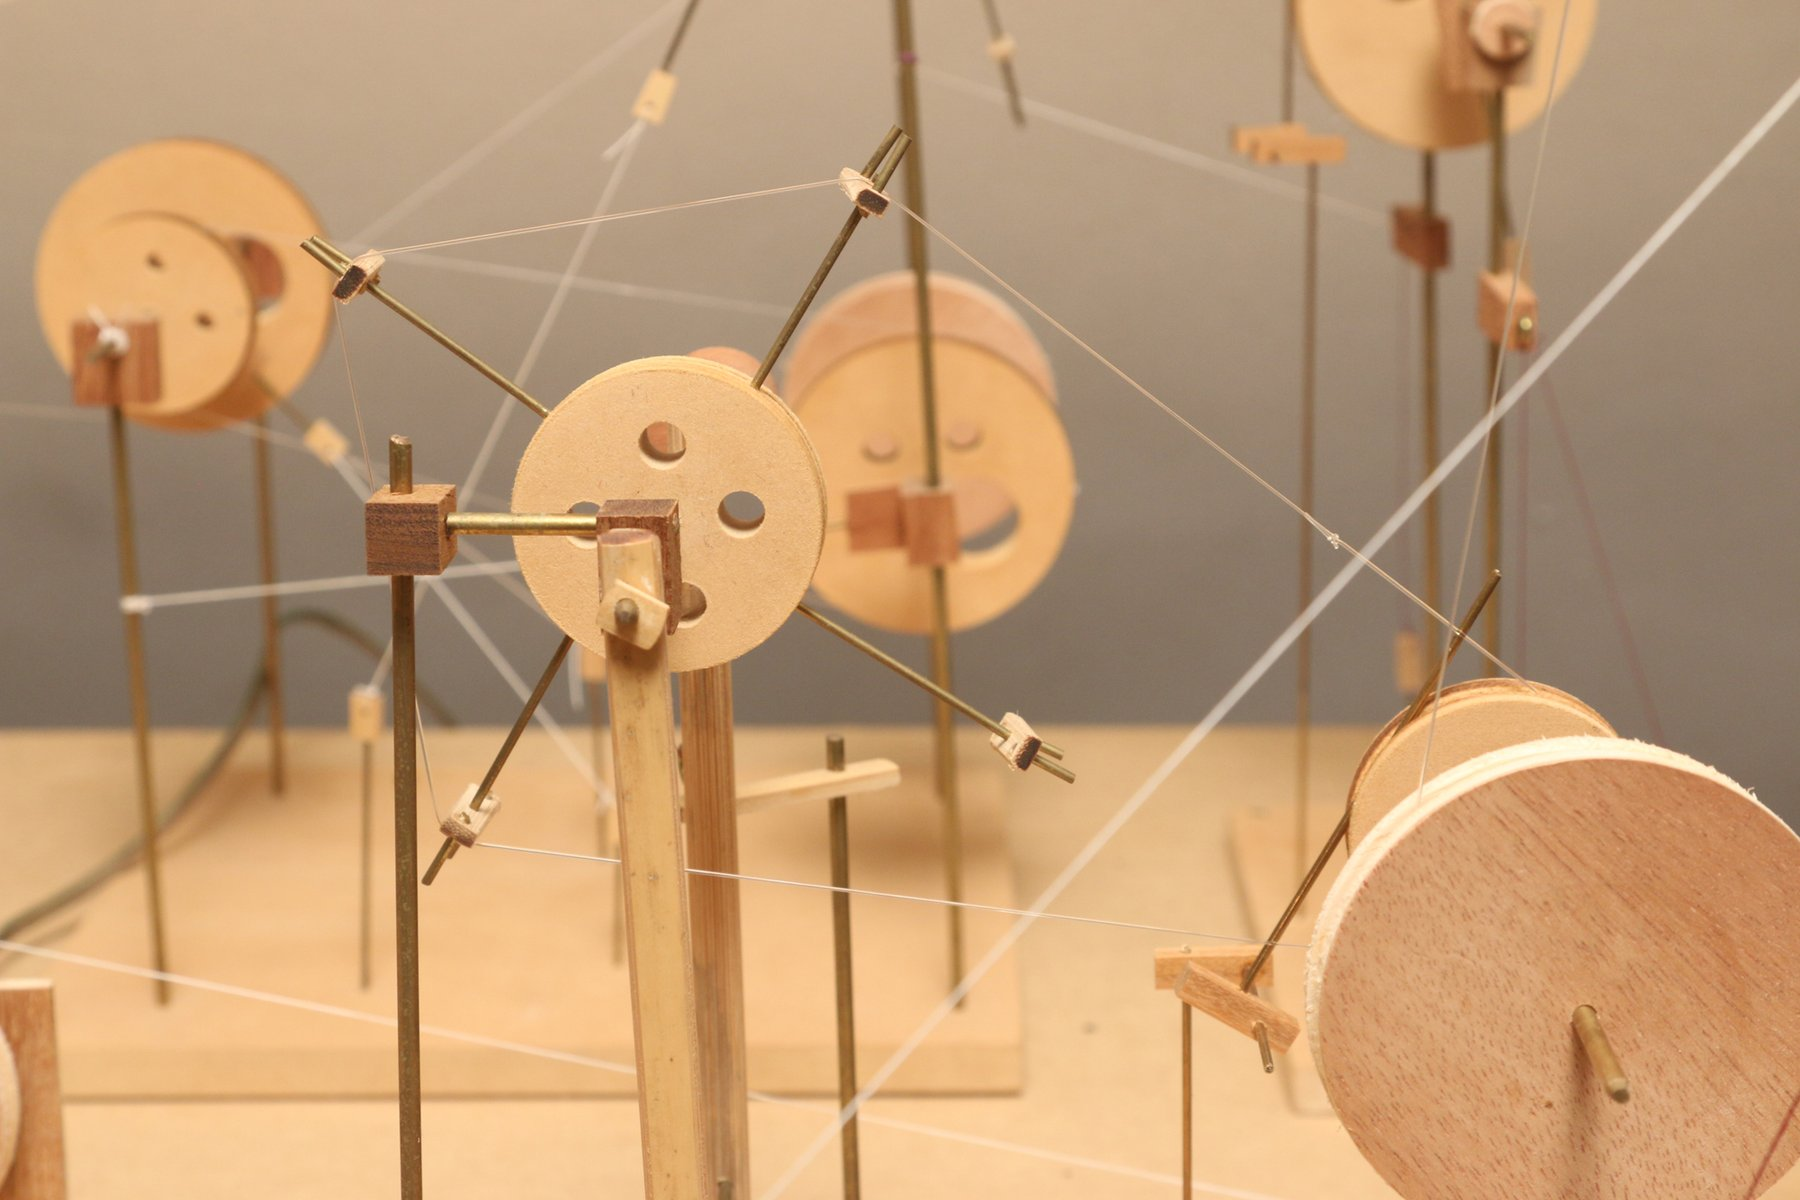 A wooden structure made of cylinders and dowels, O Grivo Soundtracks